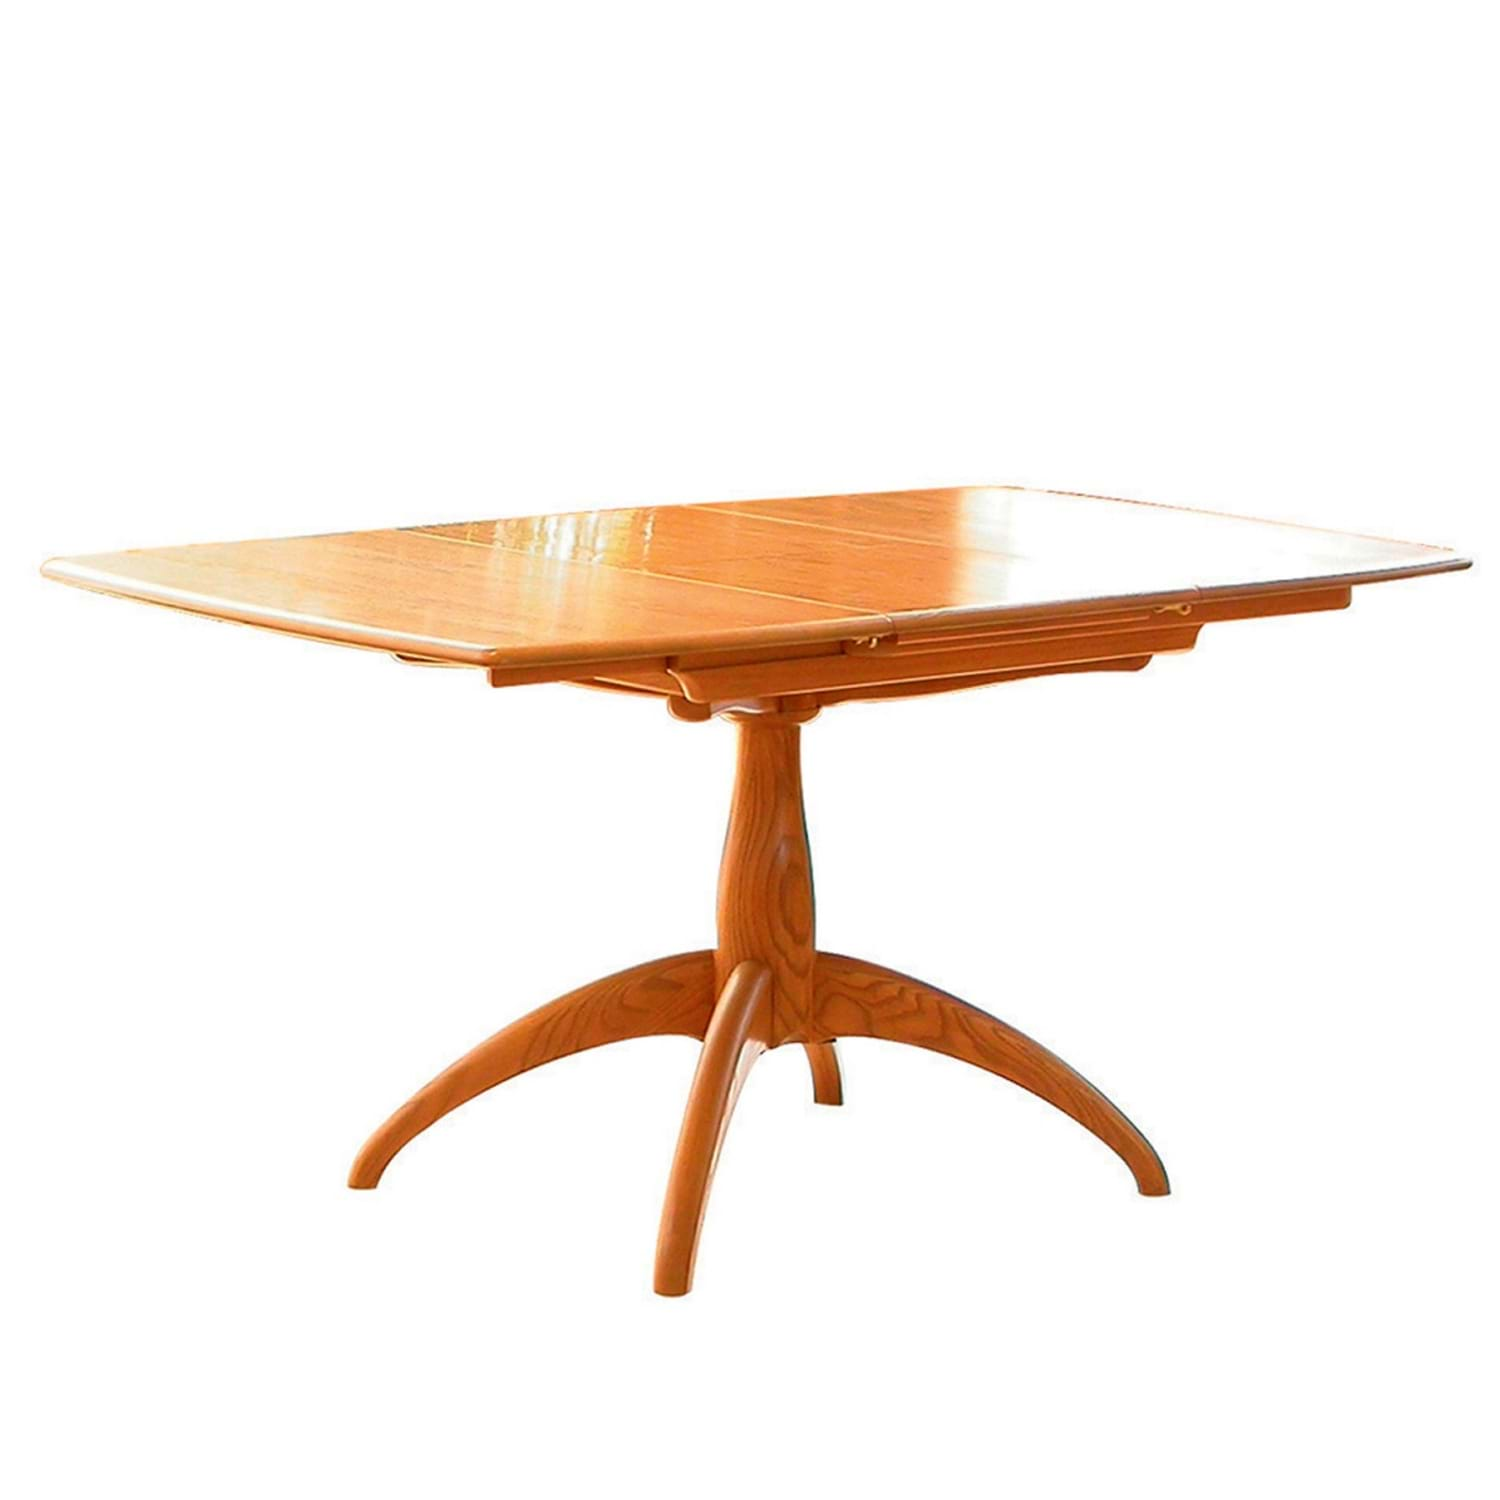 Image of Ercol Windsor Small Dining Table